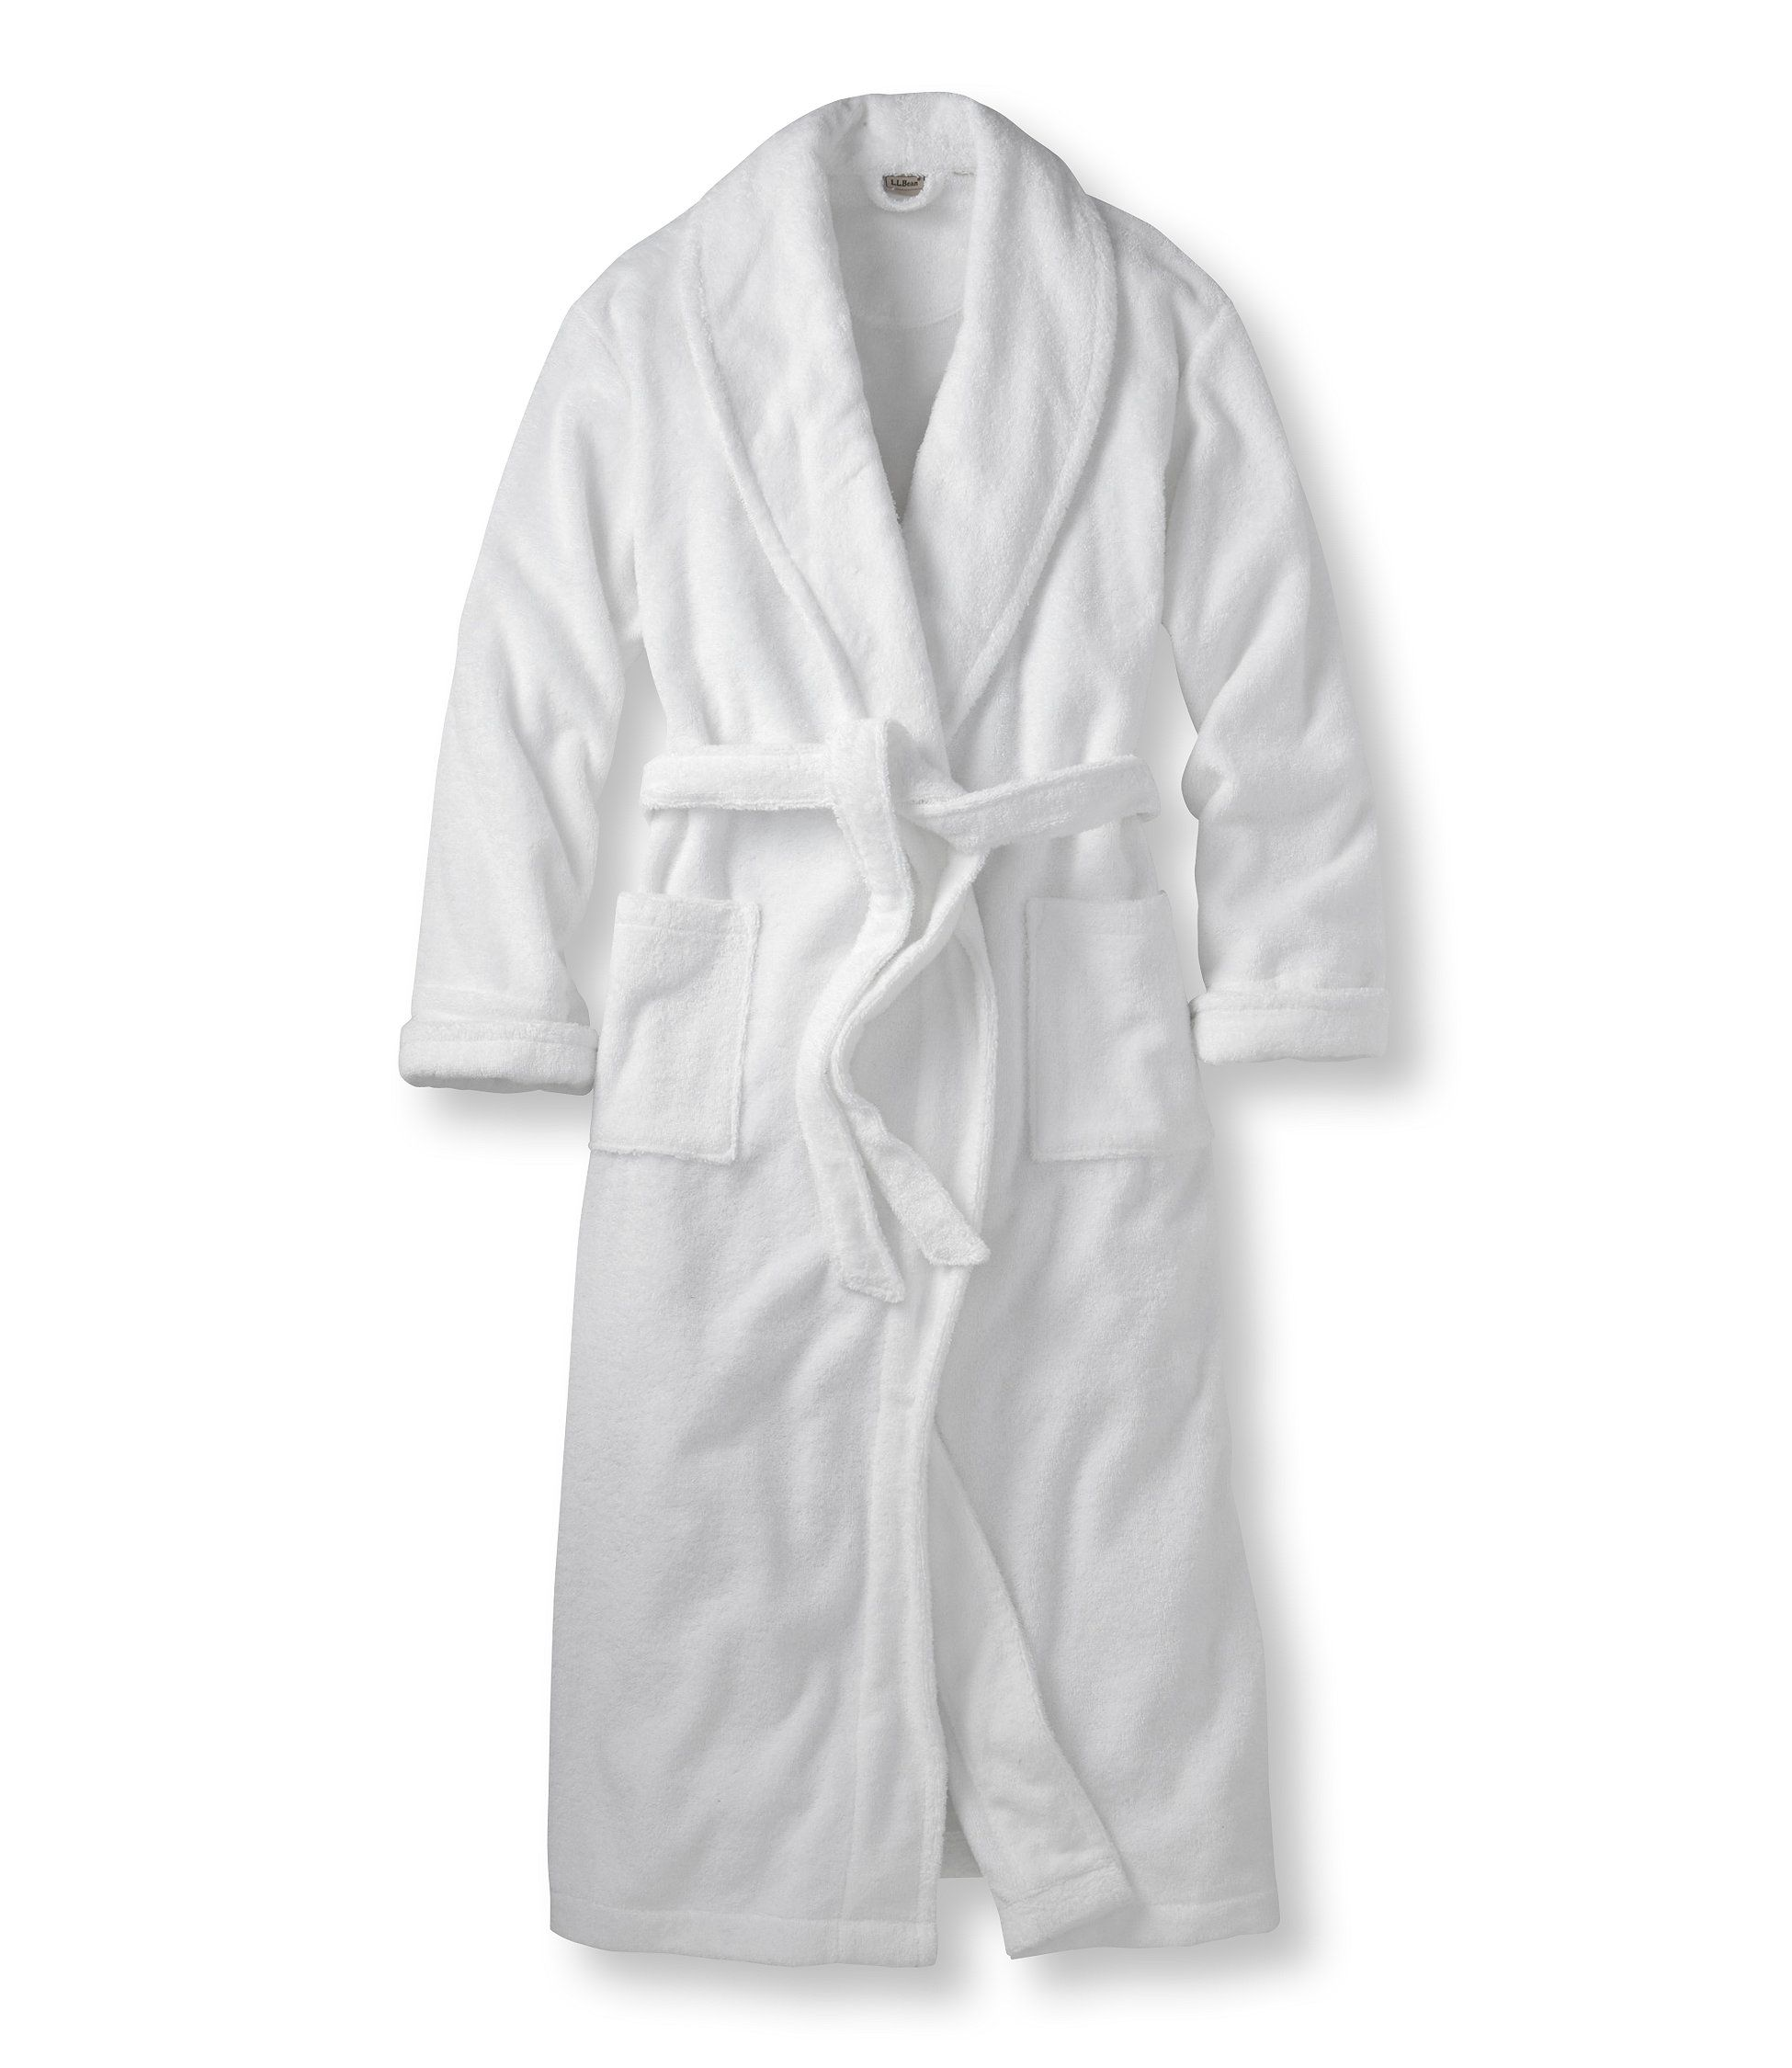 Terry Cloth Robe in white. Simple. Terry Cloth Bathrobes